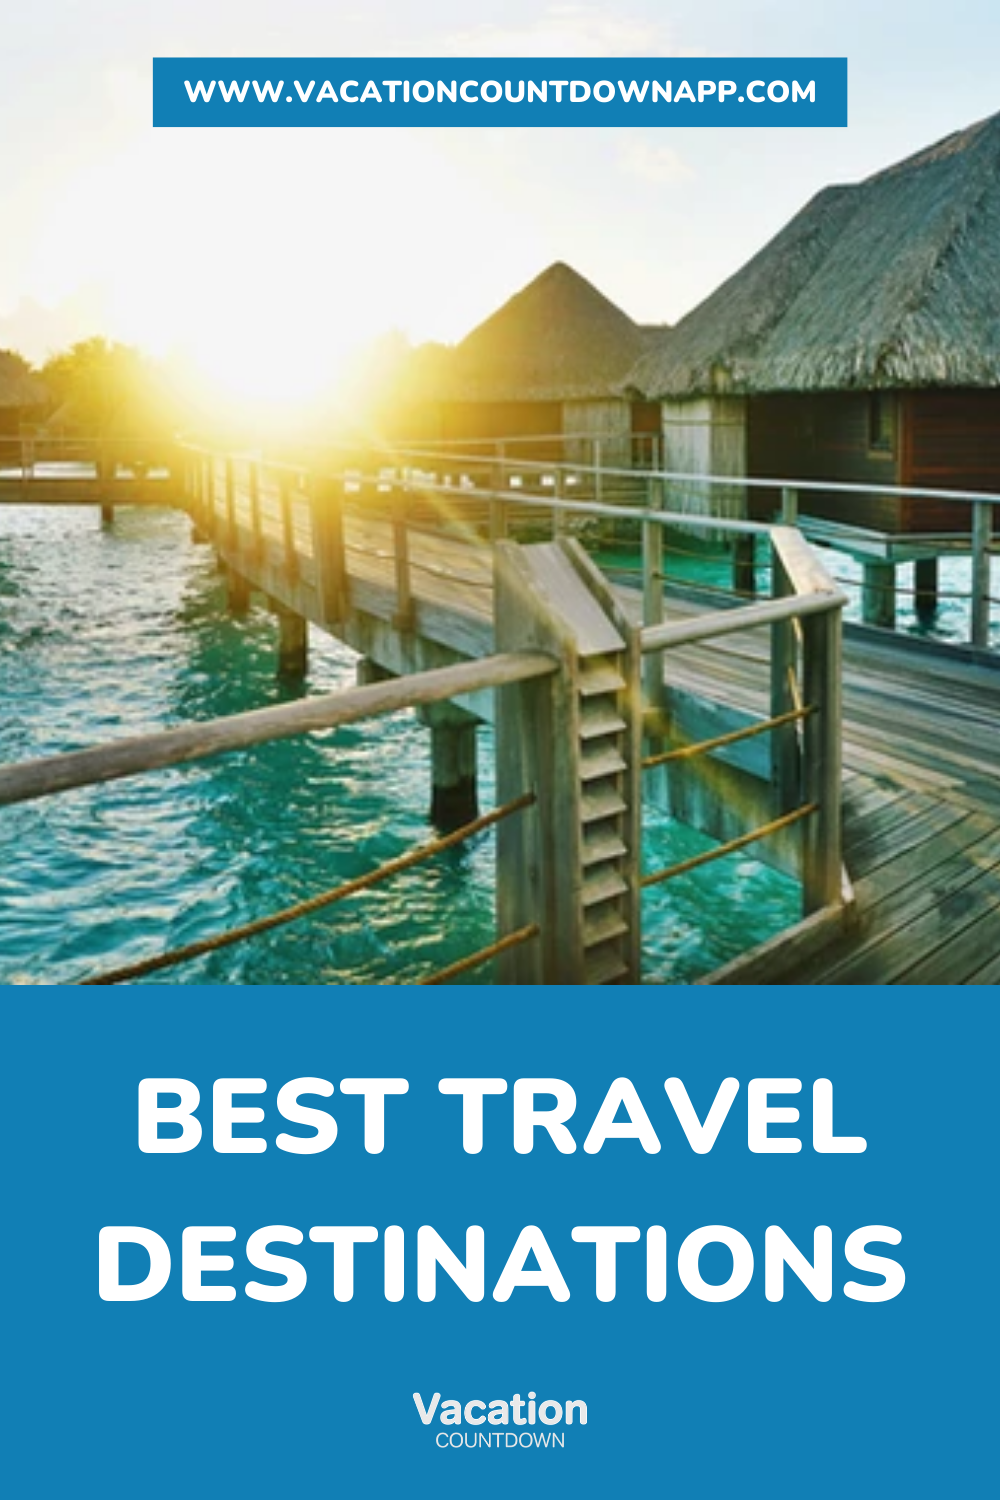 Looking for the best travel destination this 2021? Here's a list of holiday destination bucket list that you shouldn't miss! If you're looking for the best family travel destinations or solo travel destination, this is perfect for you! Here are top 5 vacation destinations in 2021! Best travel destinations and roadtrip destinations. Unique travel destinations and fun travel destinations that you will love!